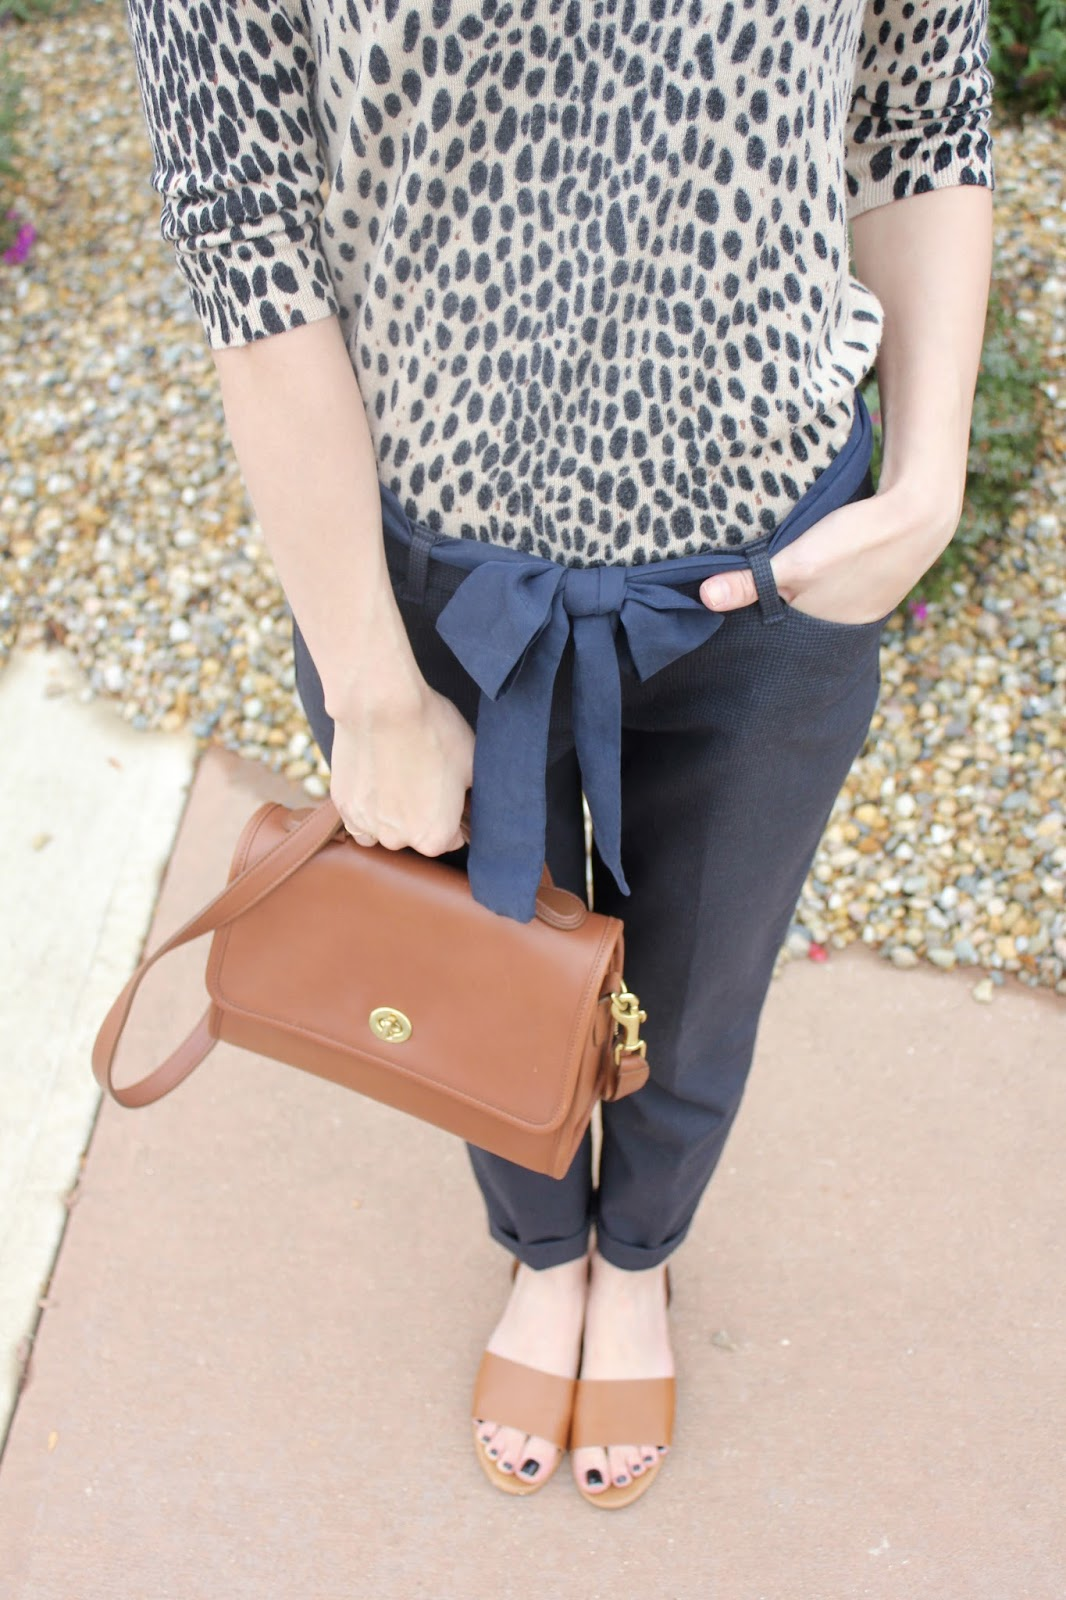 J.Crew leopard sweater, Gap navy pants, and brown leather Coach purse